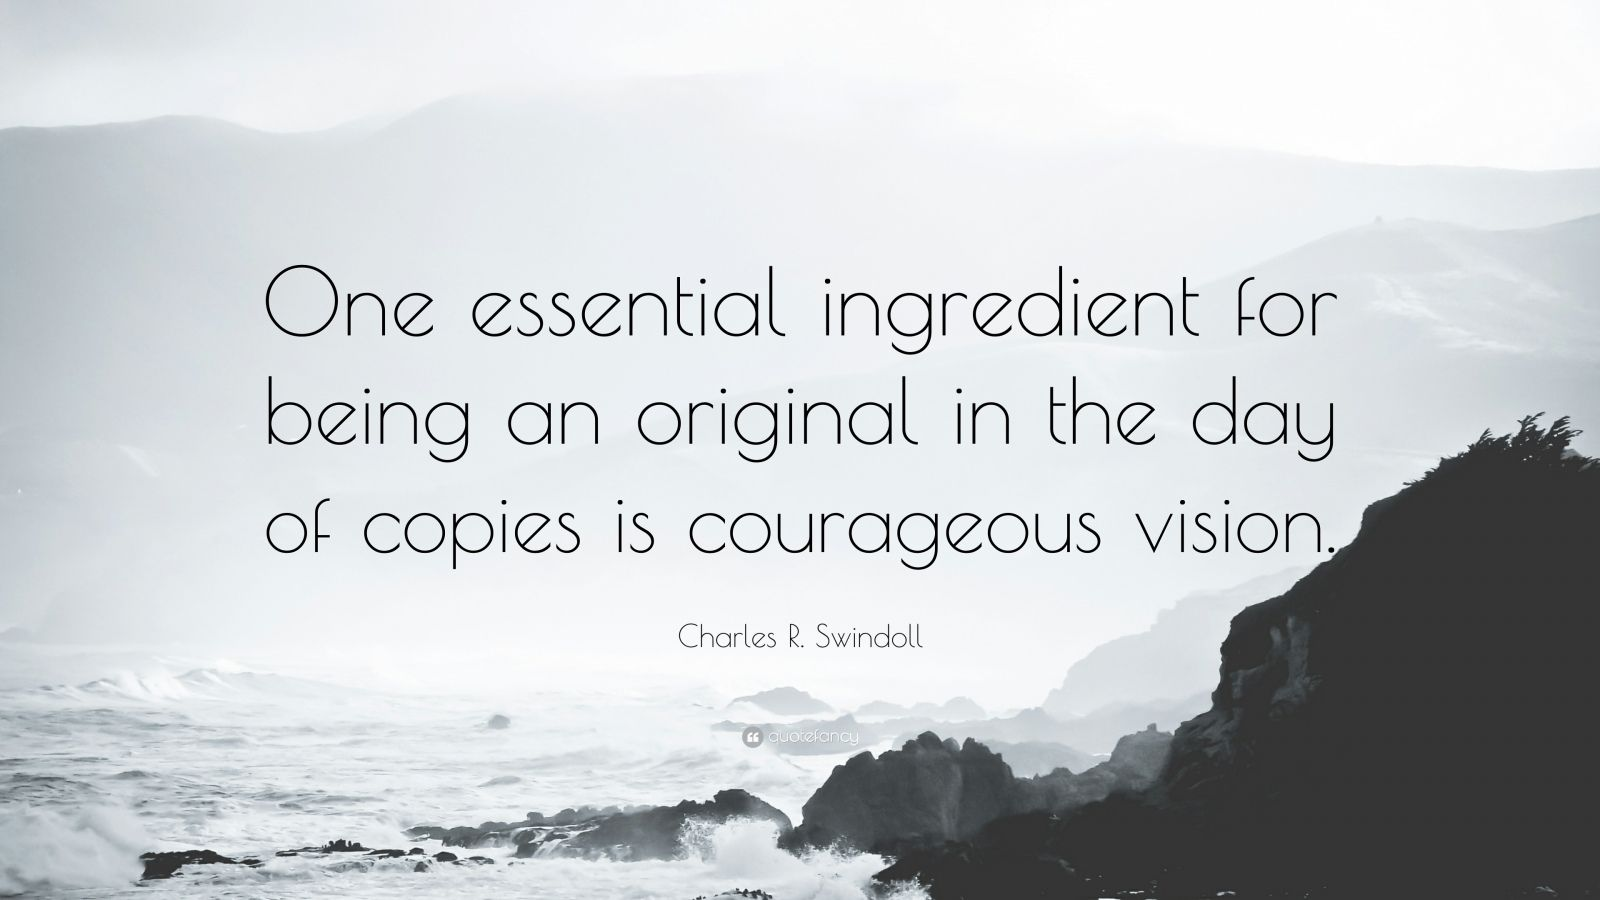 """Charles R. Swindoll Quote: """"One essential ingredient for being an original in the day of copies is courageous vision."""""""